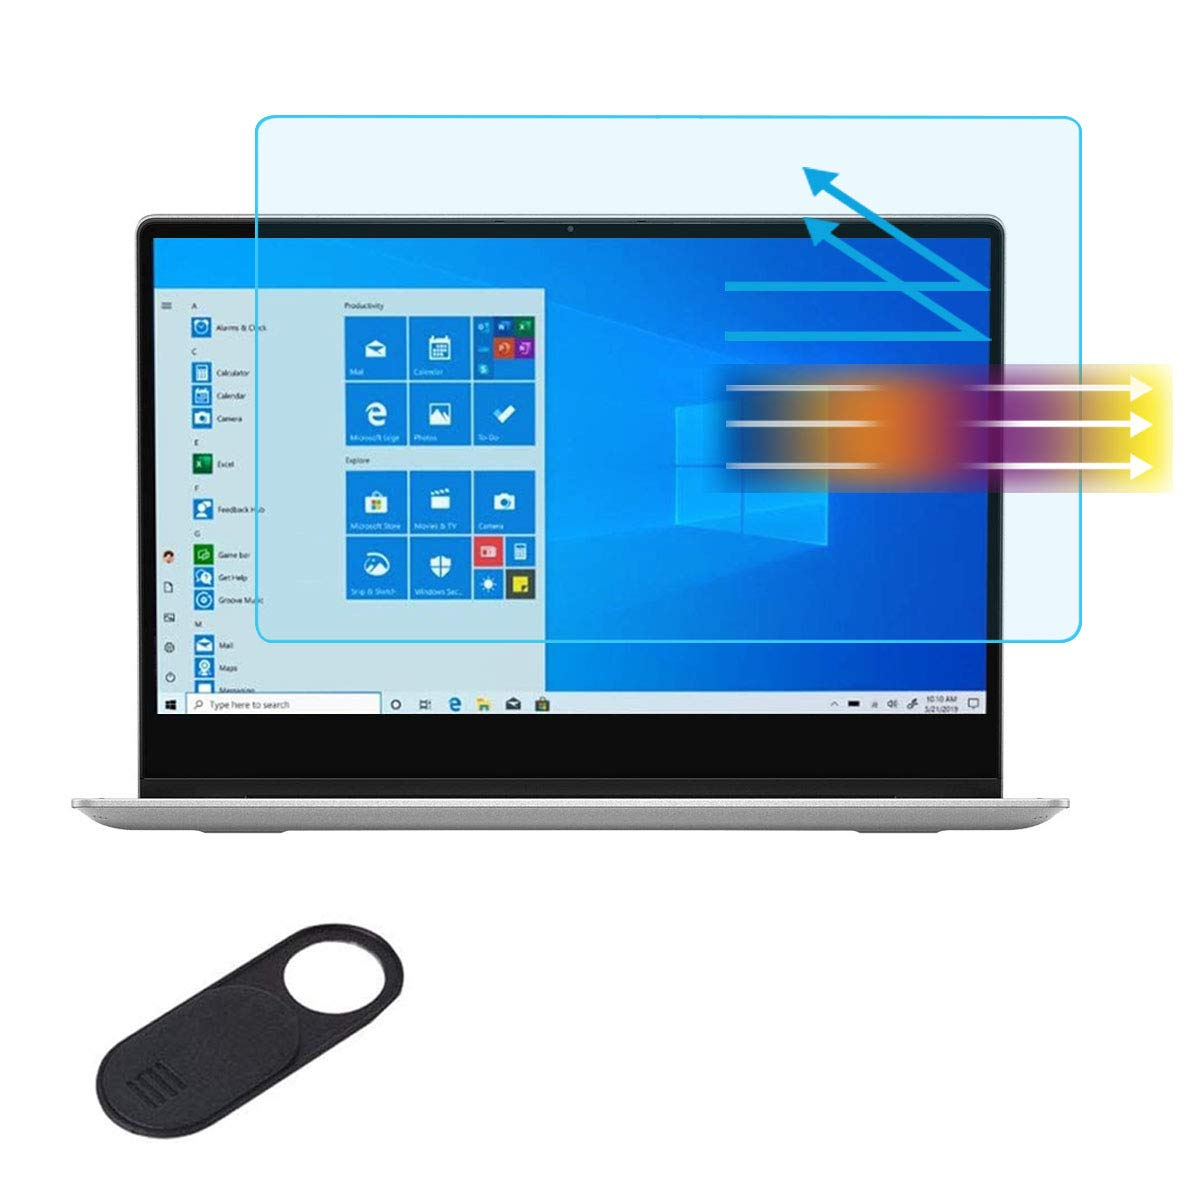 Anti/Blue/Light Anti Glare Screen Protector Fit Microsoft New Surface Pro X 13 2020 2019 Model Touch-Screen Laptop Eyes Protection Screen Filter Reduces Eye Strain Help You Sleep Better